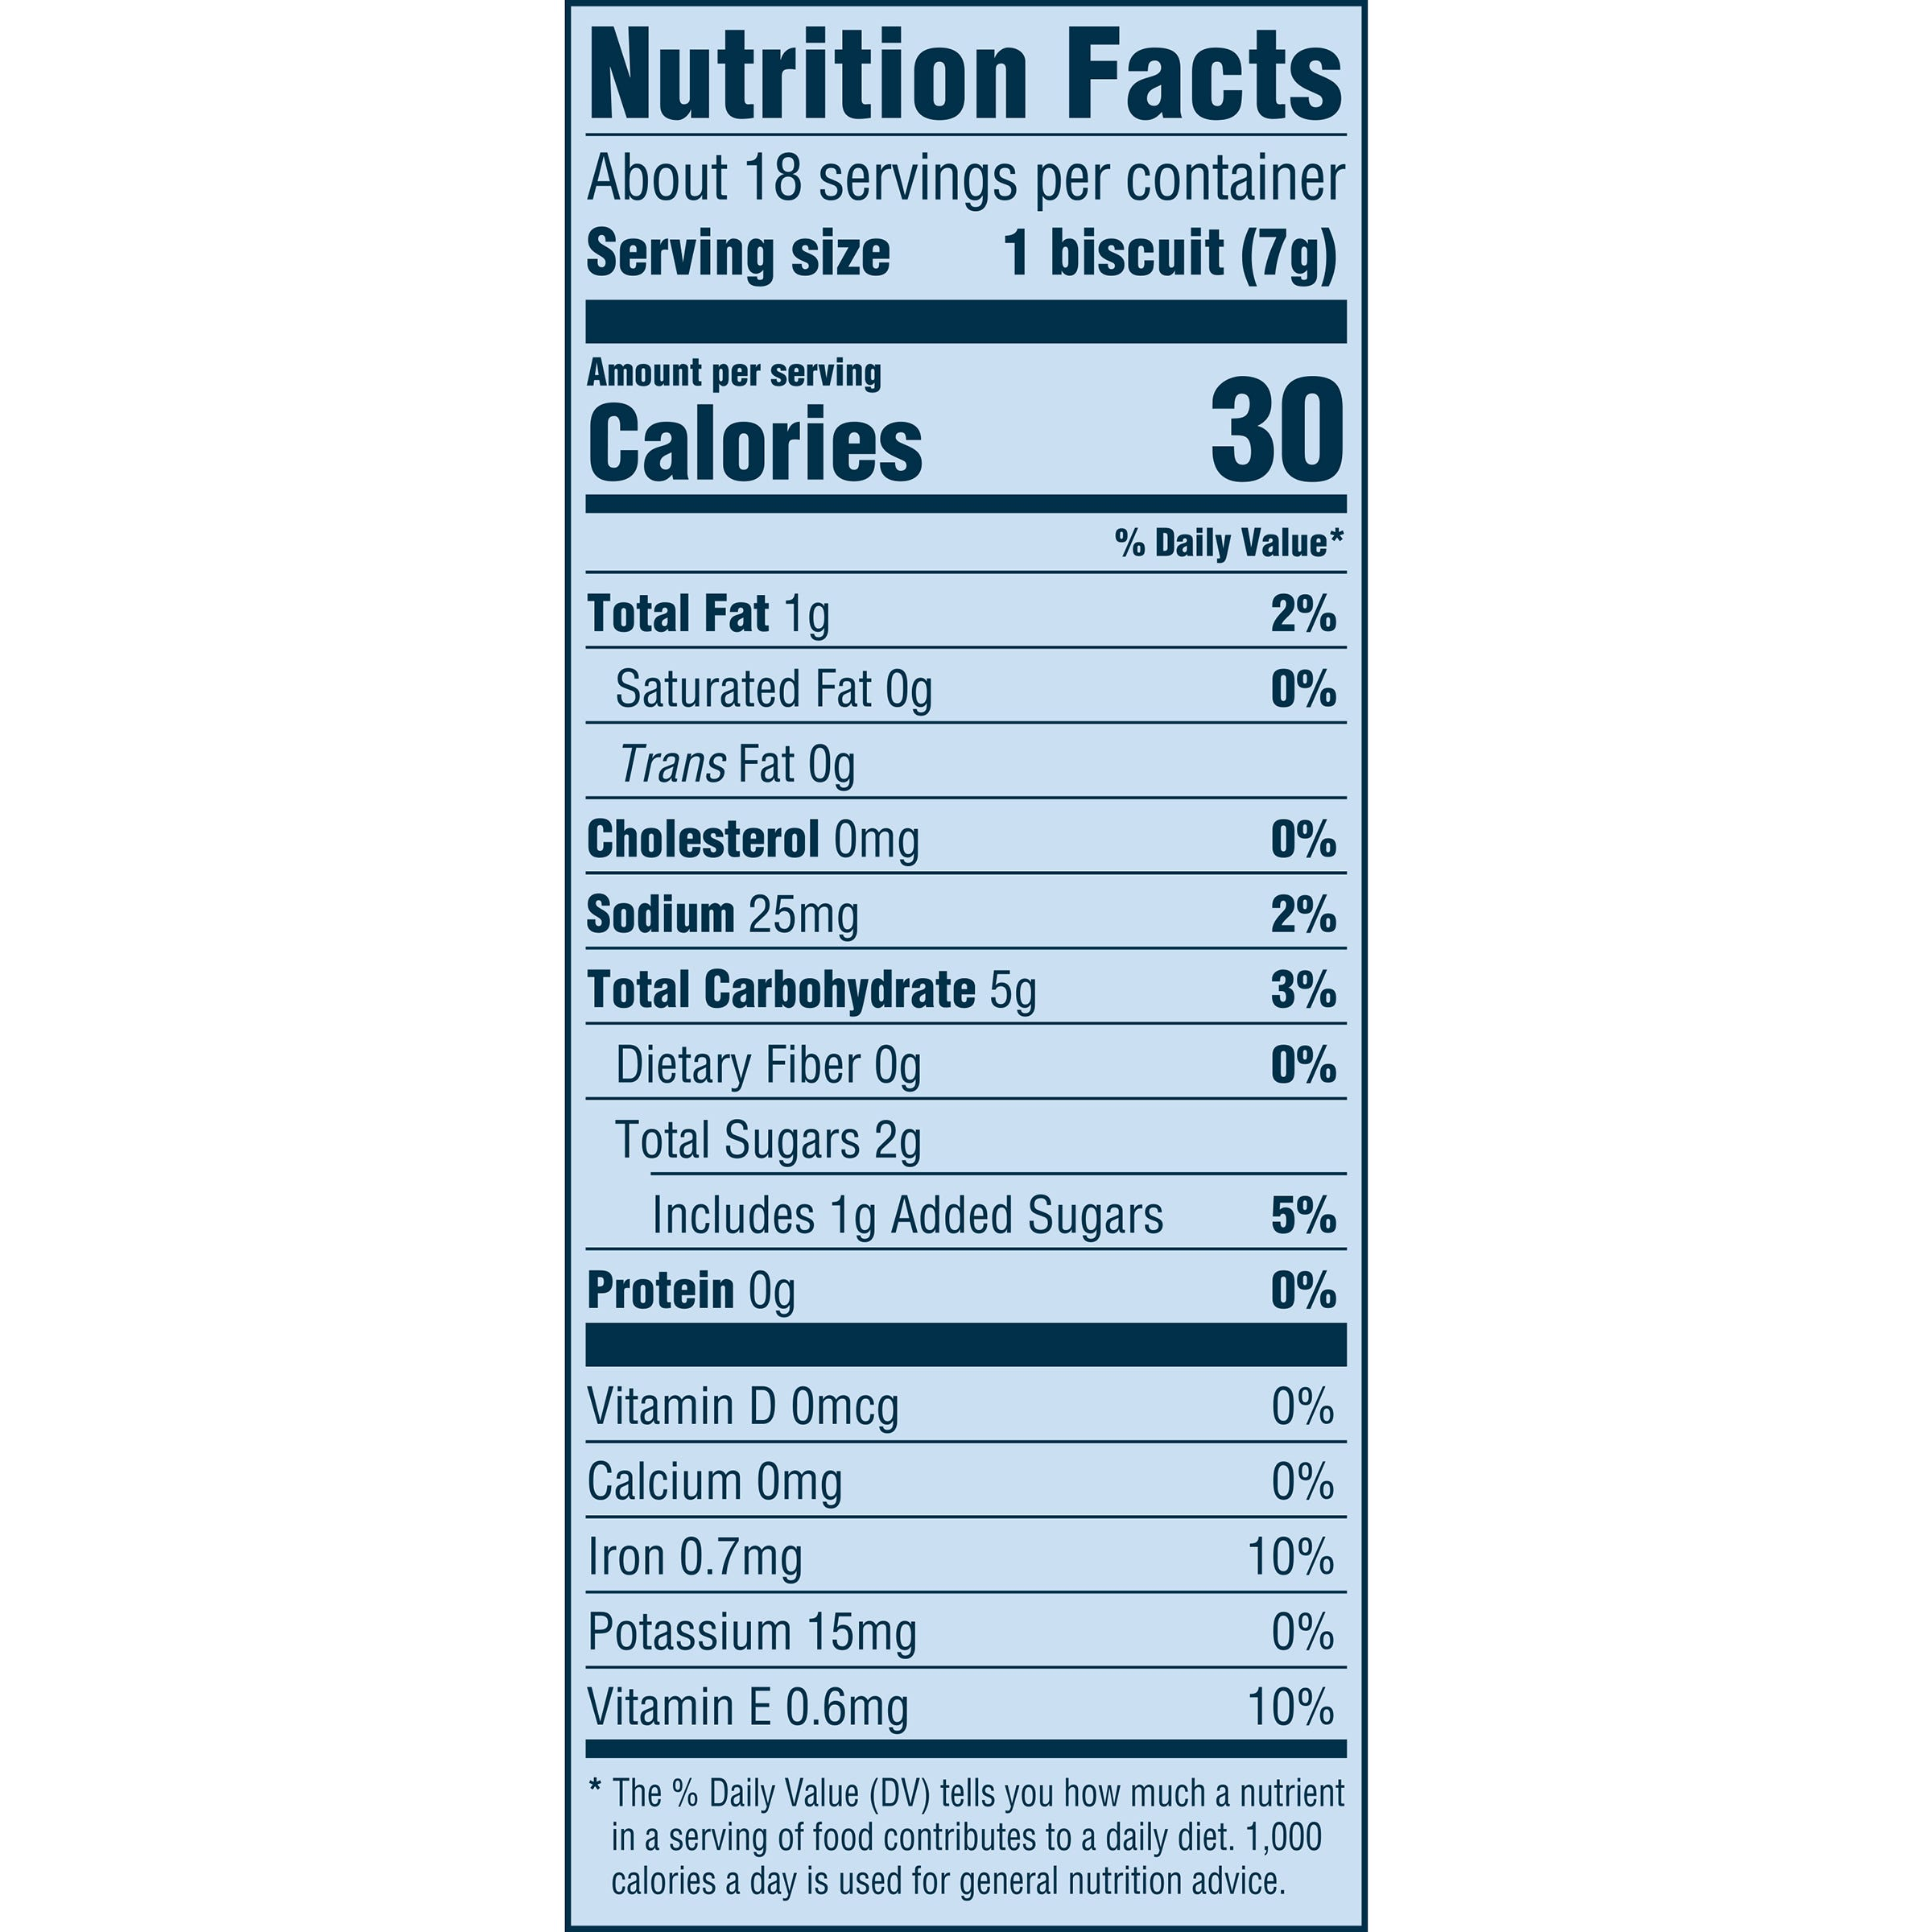 Lil' Biscuits Nutrition Facts